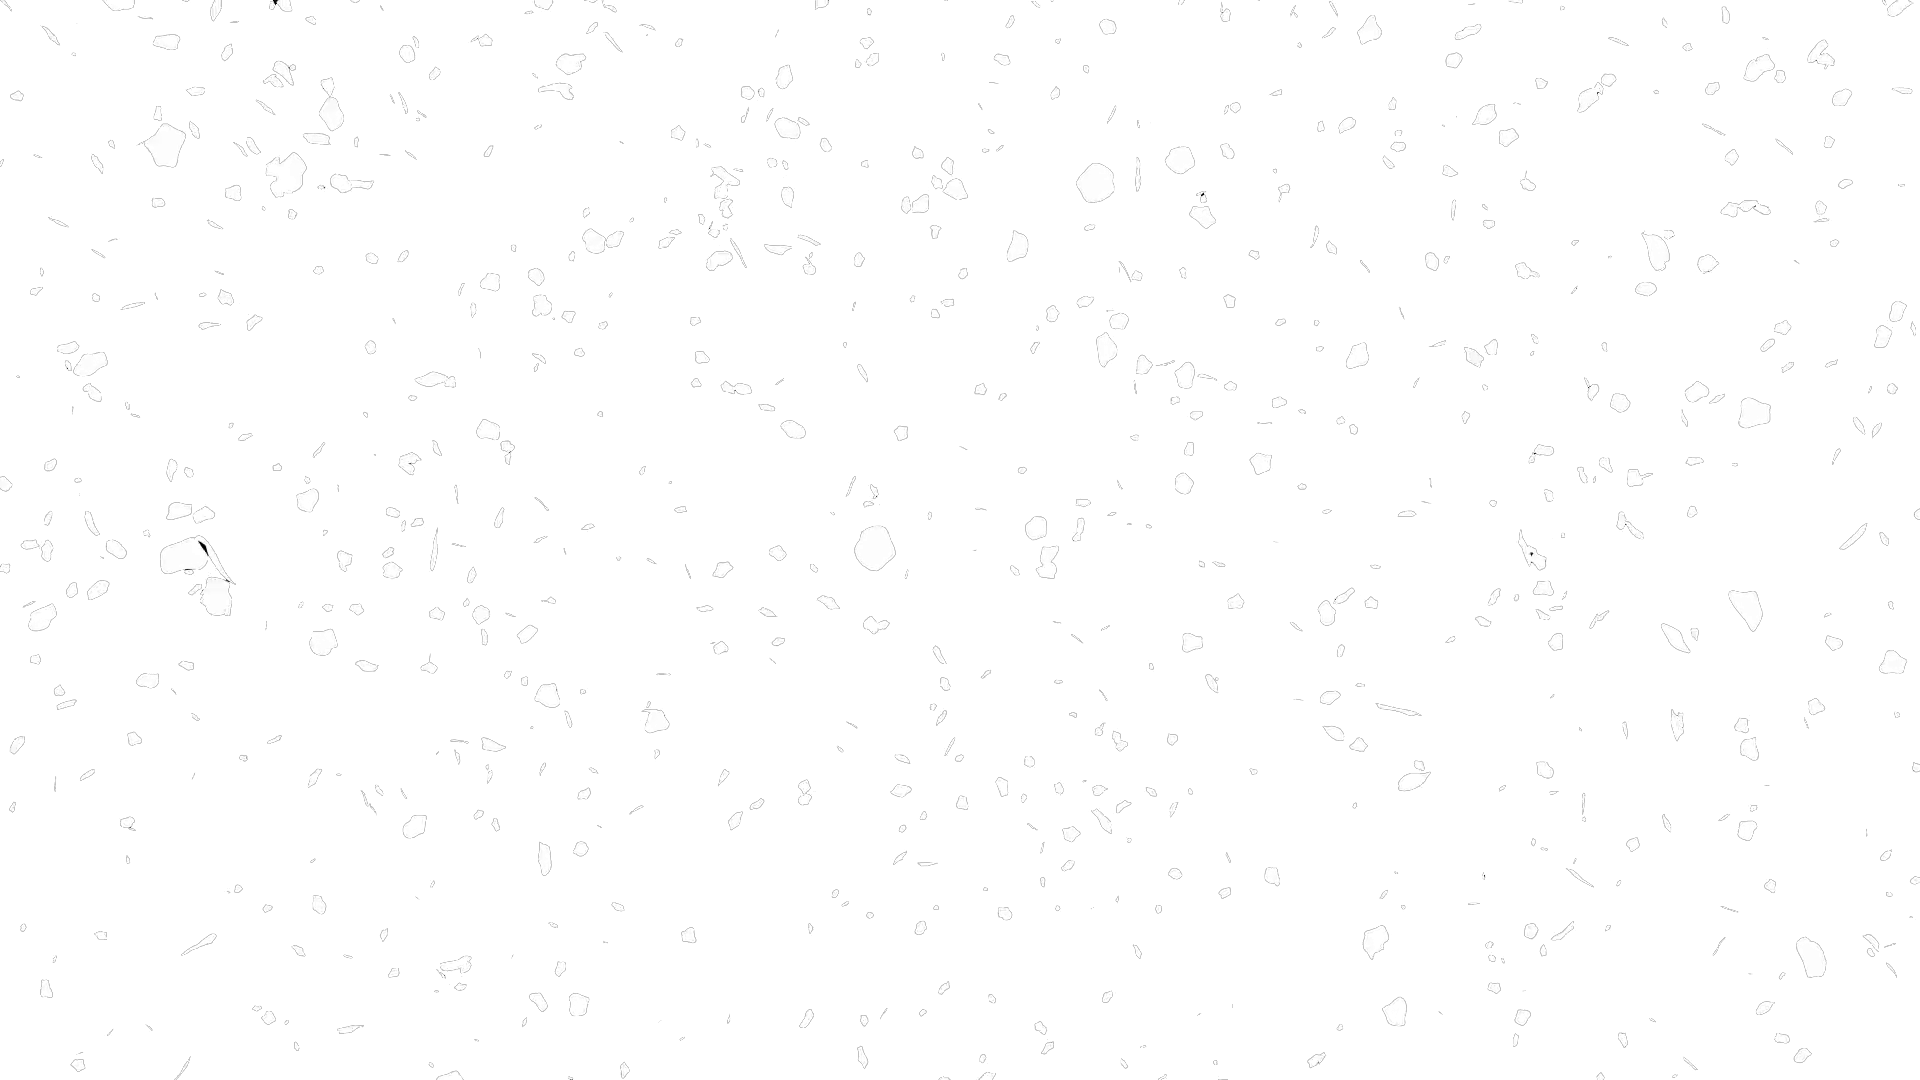 clipart download Snow PNG Images Transparent Free Download